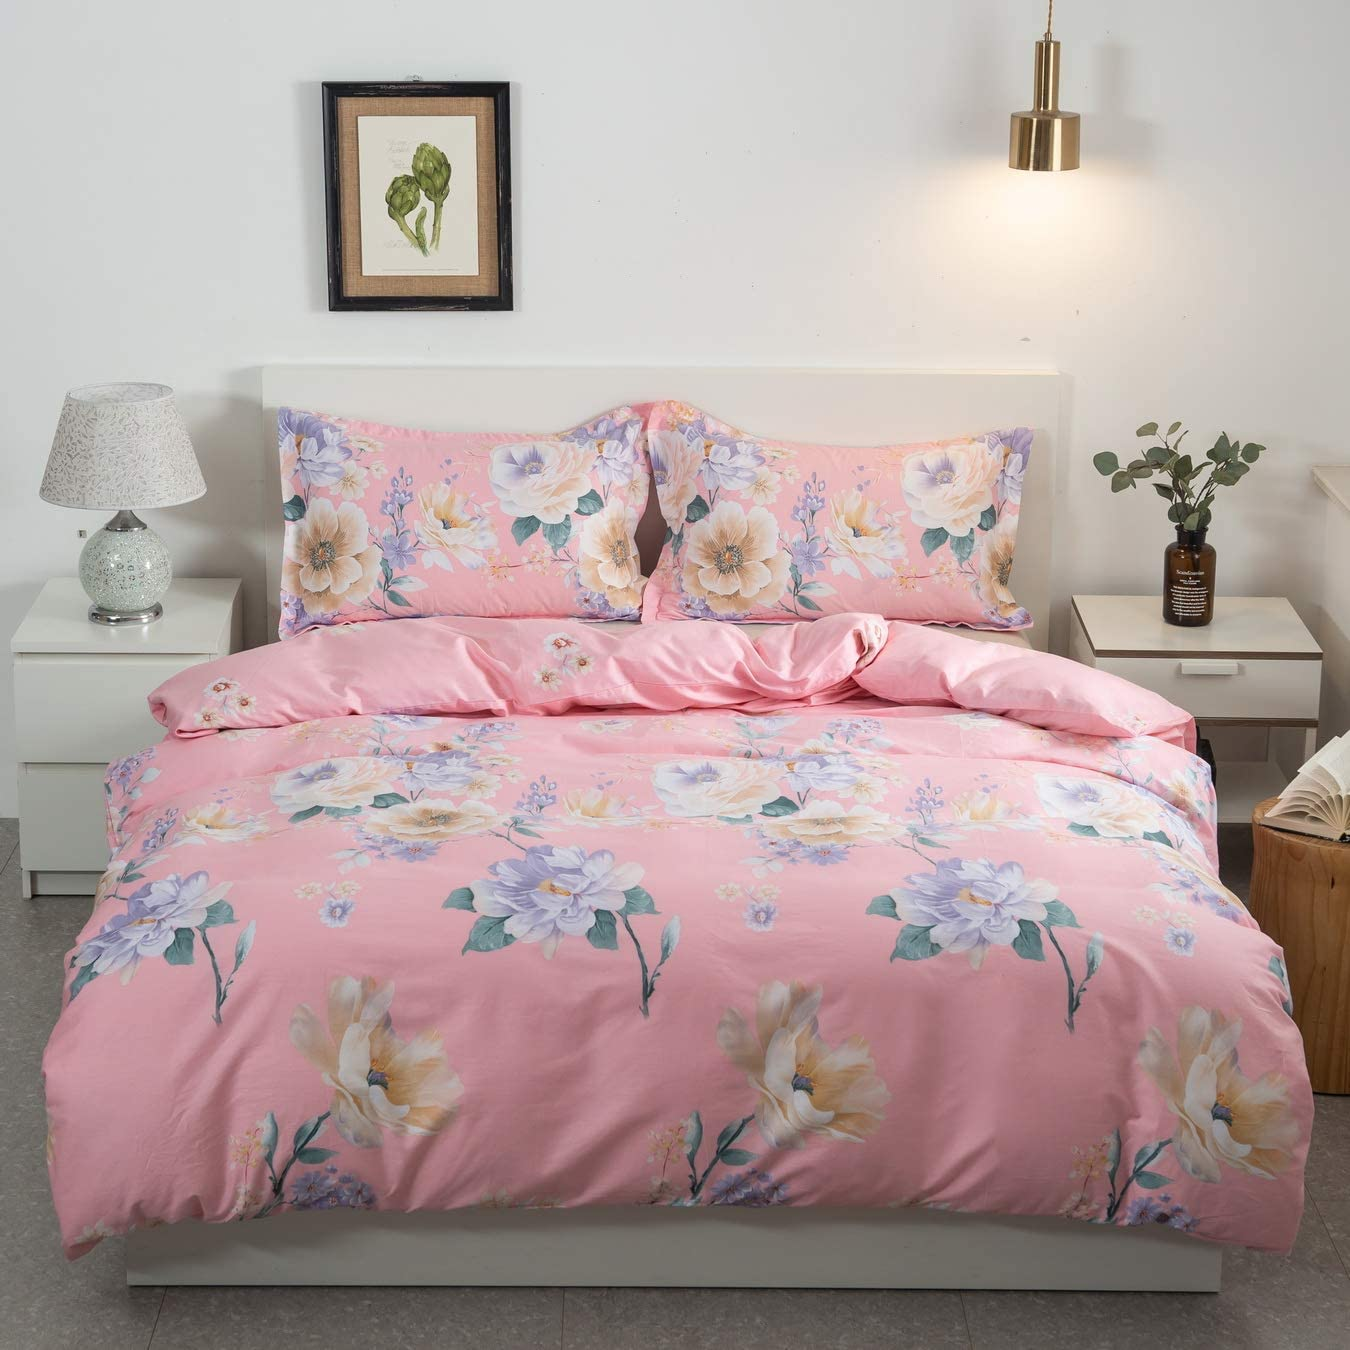 Style Bedding Duvet Cover, 100% Cotton Comfy Floral Flower Printed Reversible Pintuck Comforter Cover and Shams 3 pcs Set with Hidden Zipper and Corner Ties, Queen(90 x 90 inch)